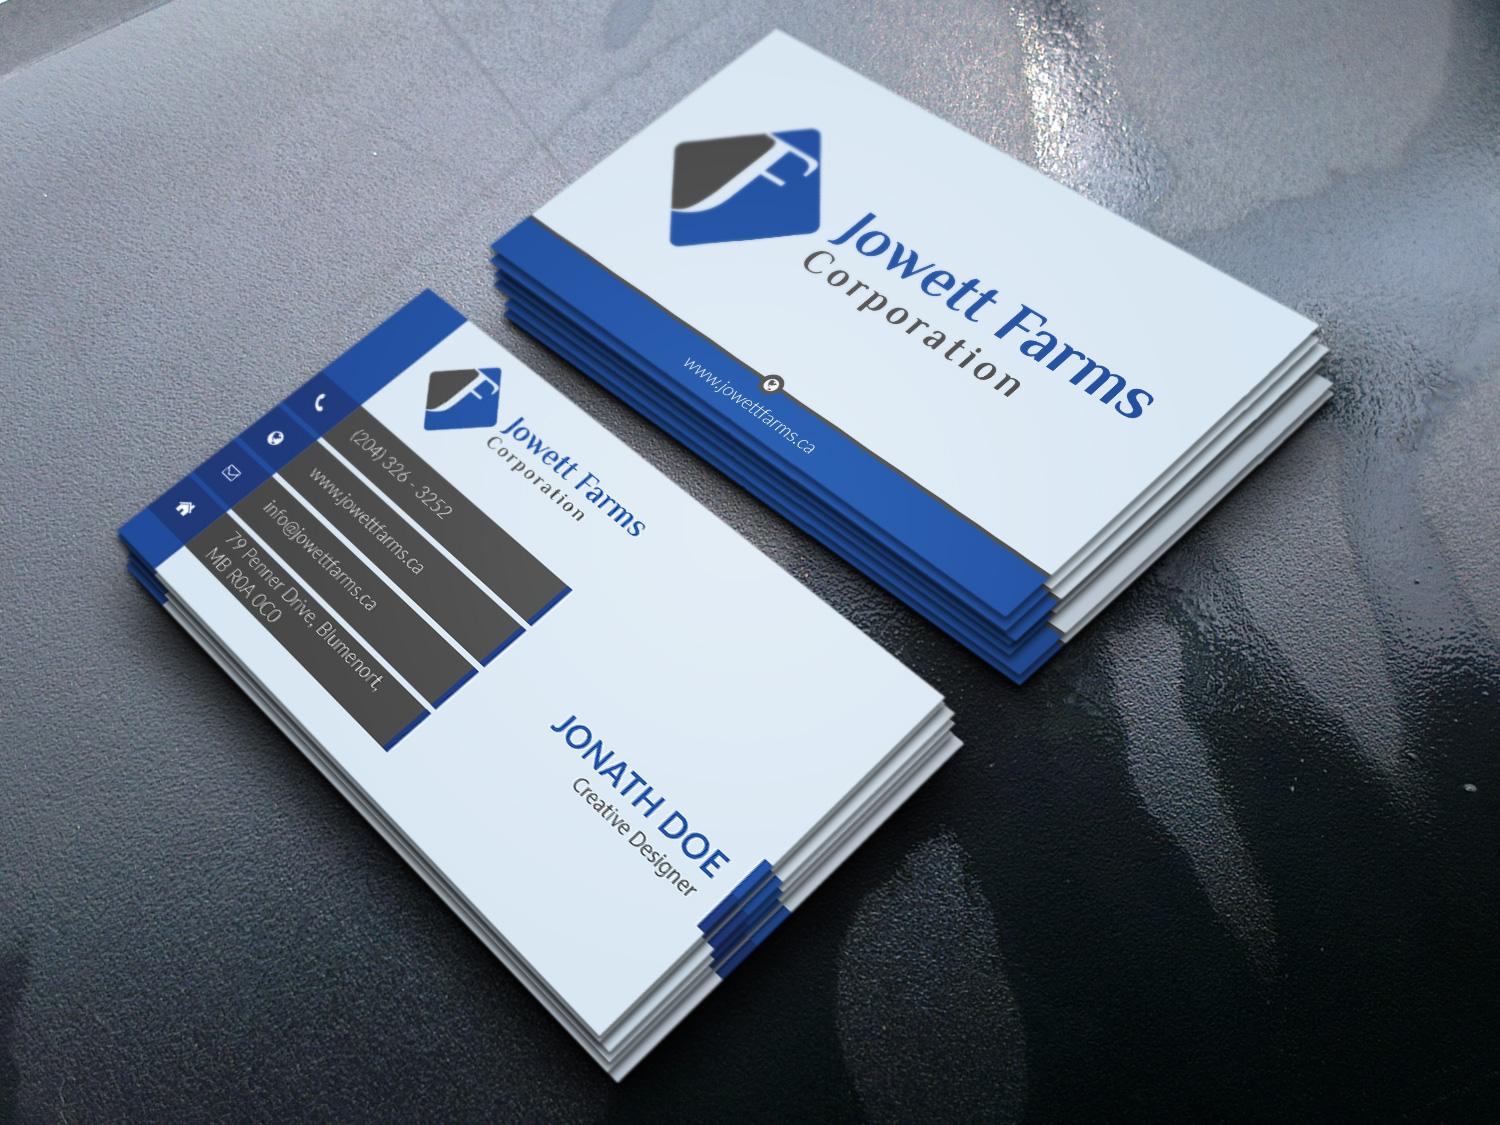 Professional serious wholesale business card design for jowett business card design by designstudio937 for jowett farms corporation design 14469634 reheart Choice Image